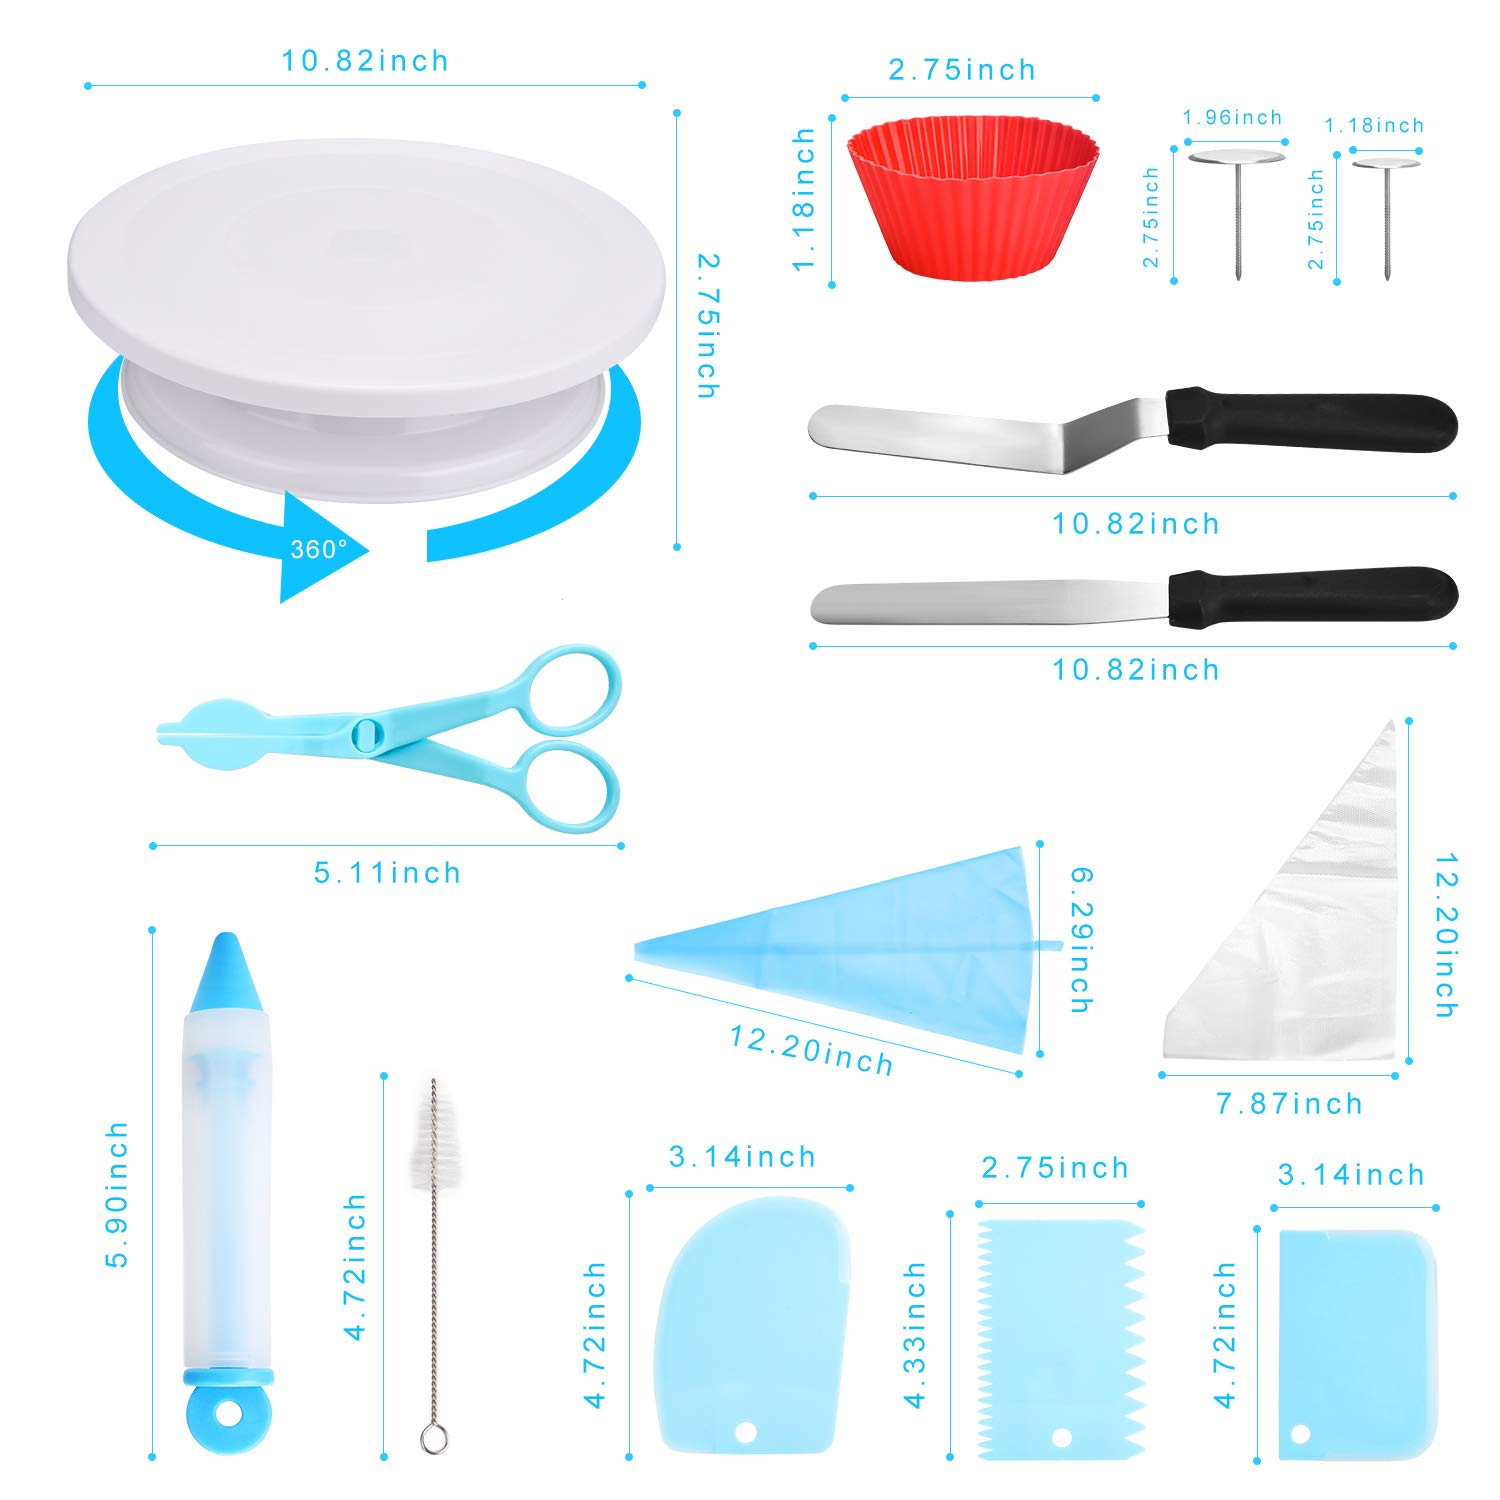 83 pcs Cake Decorating Supplies Kit for Beginners-Cake Turntable Stand-Icing Tips, Pastry Bags, Icing Spatula, Icing Smoother,Flower Nails,Flower Lifters,Decorating Pen,Cupcake Molds,Cleaning Brush